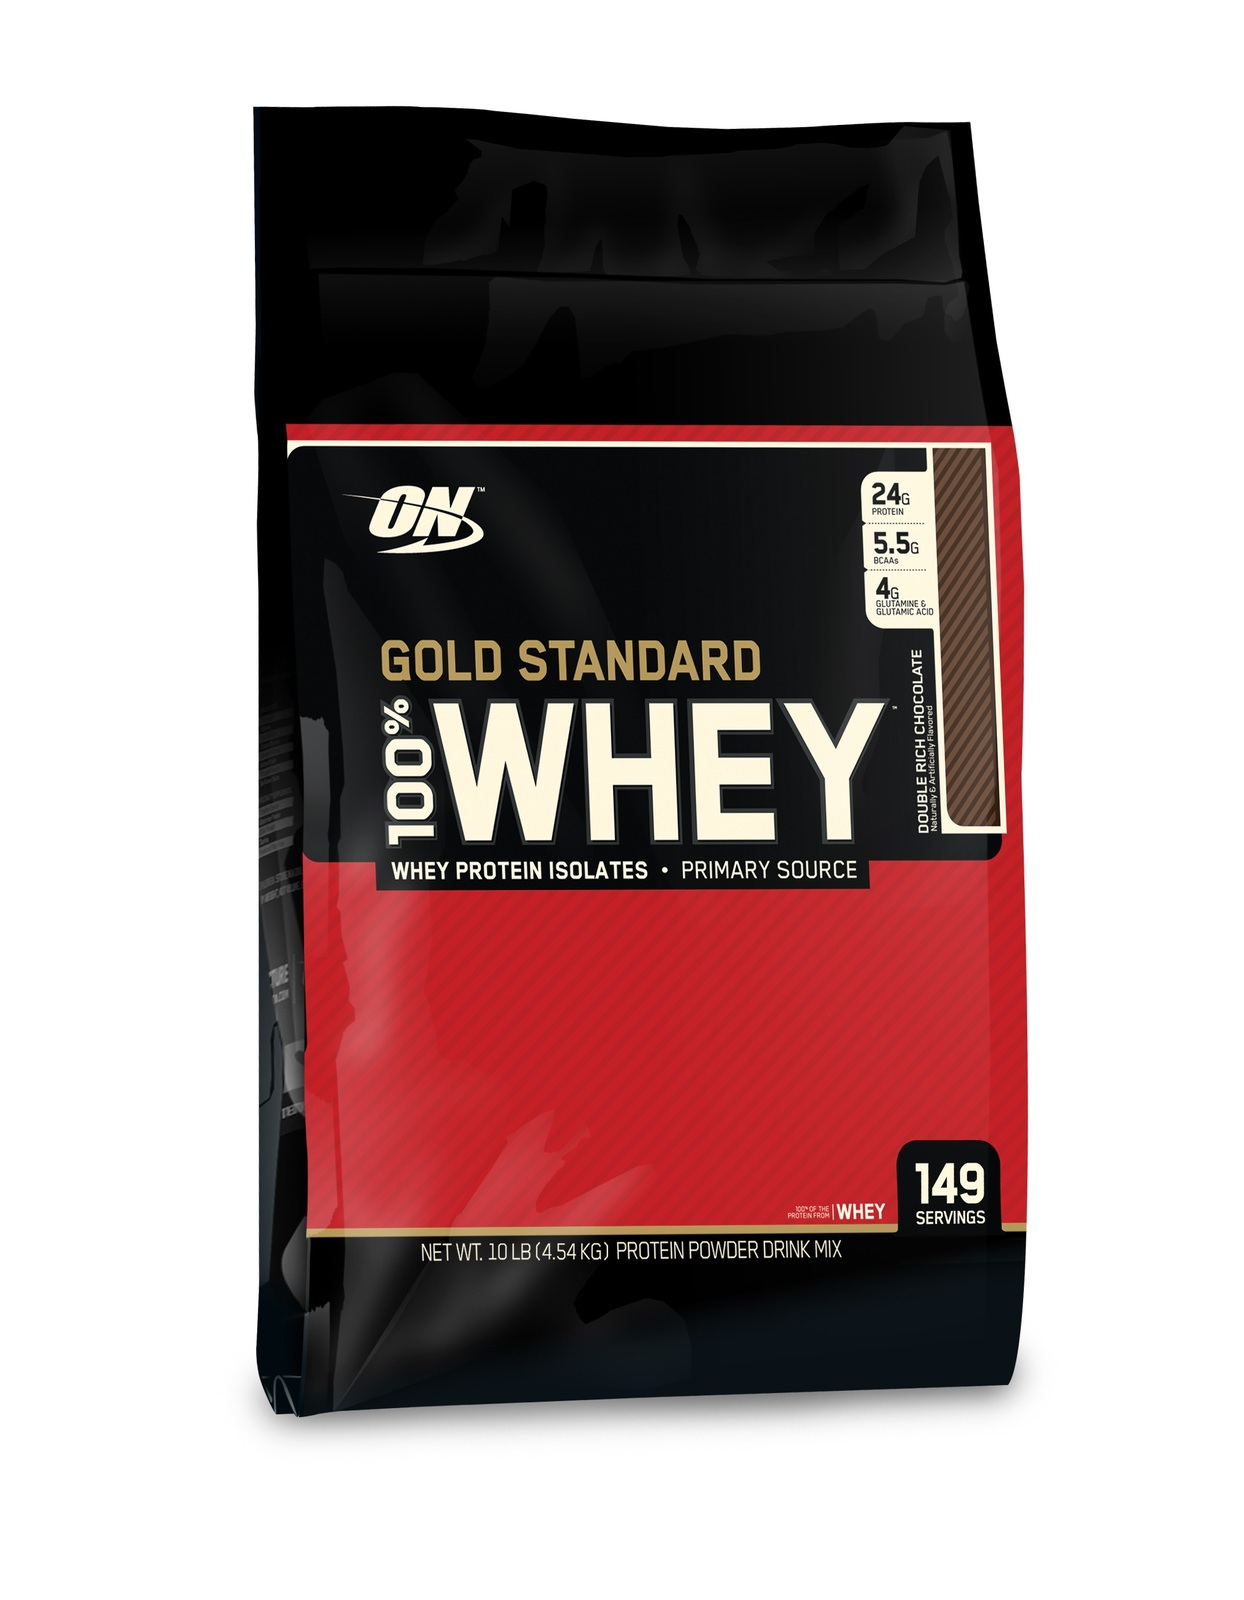 Optimum Nutrition Gold Standard 100% Whey - Double Rich Chocolate (4.55kg) image